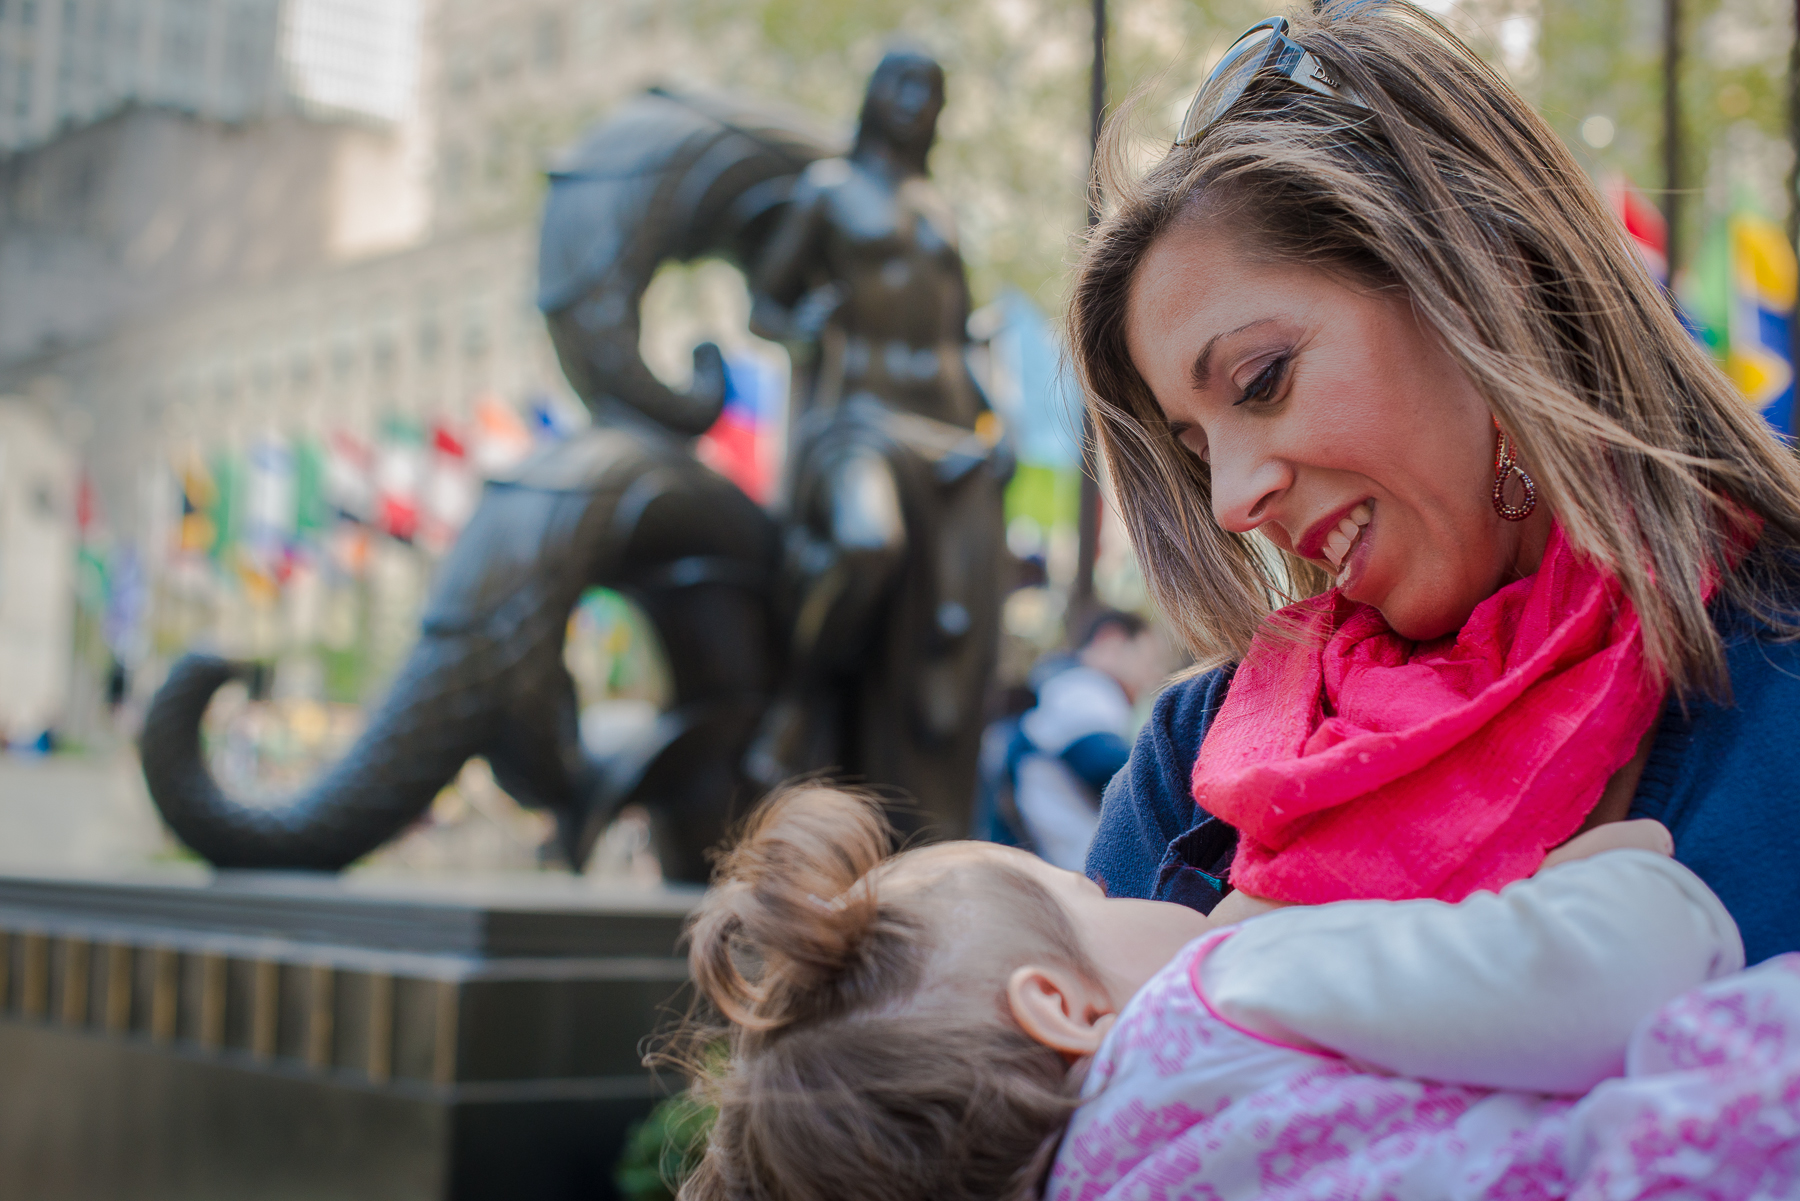 NYC-BreastfeedingWorld-ManuelaCorrado-AlegaresPhotography-16